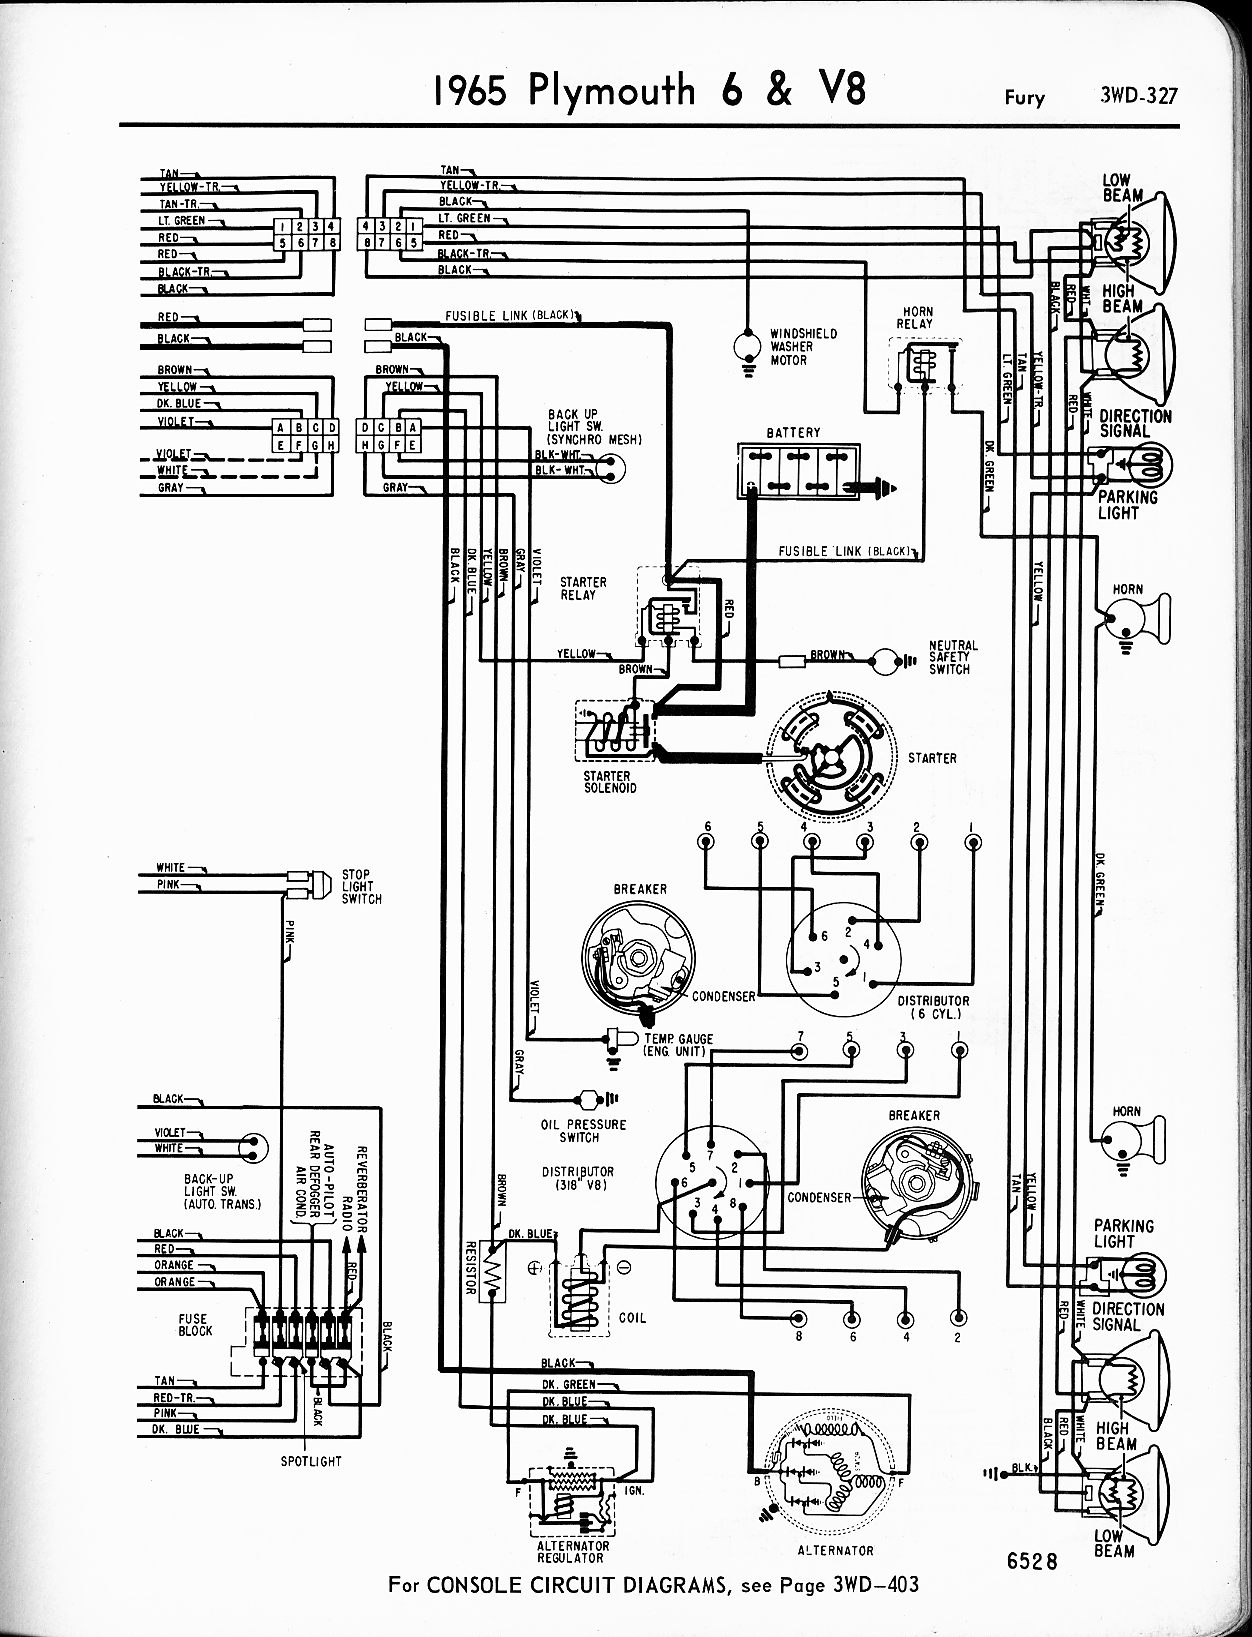 Wiring Diagram 1953 Plymouth - Wiring Diagram Table on 1967 gto wiring diagram, 1970 oldsmobile wiring diagram, 1970 challenger wiring diagram, 1970 camaro wiring diagram, 1970 blazer wiring diagram, 1970 jeep wiring diagram, 1970 corvette wiring diagram, 68 gto dash wiring diagram, 1970 fairlane wiring diagram, 1969 gto wiring diagram, 2005 gto wiring diagram, 1966 gto wiring diagram, 1970 gto oil filter, 1964 gto wiring diagram, 1970 mustang wiring diagram, 2004 gto wiring diagram, 1971 gto wiring diagram, 1970 malibu wiring diagram, 1965 gto wiring diagram, 1970 nova wiring diagram,